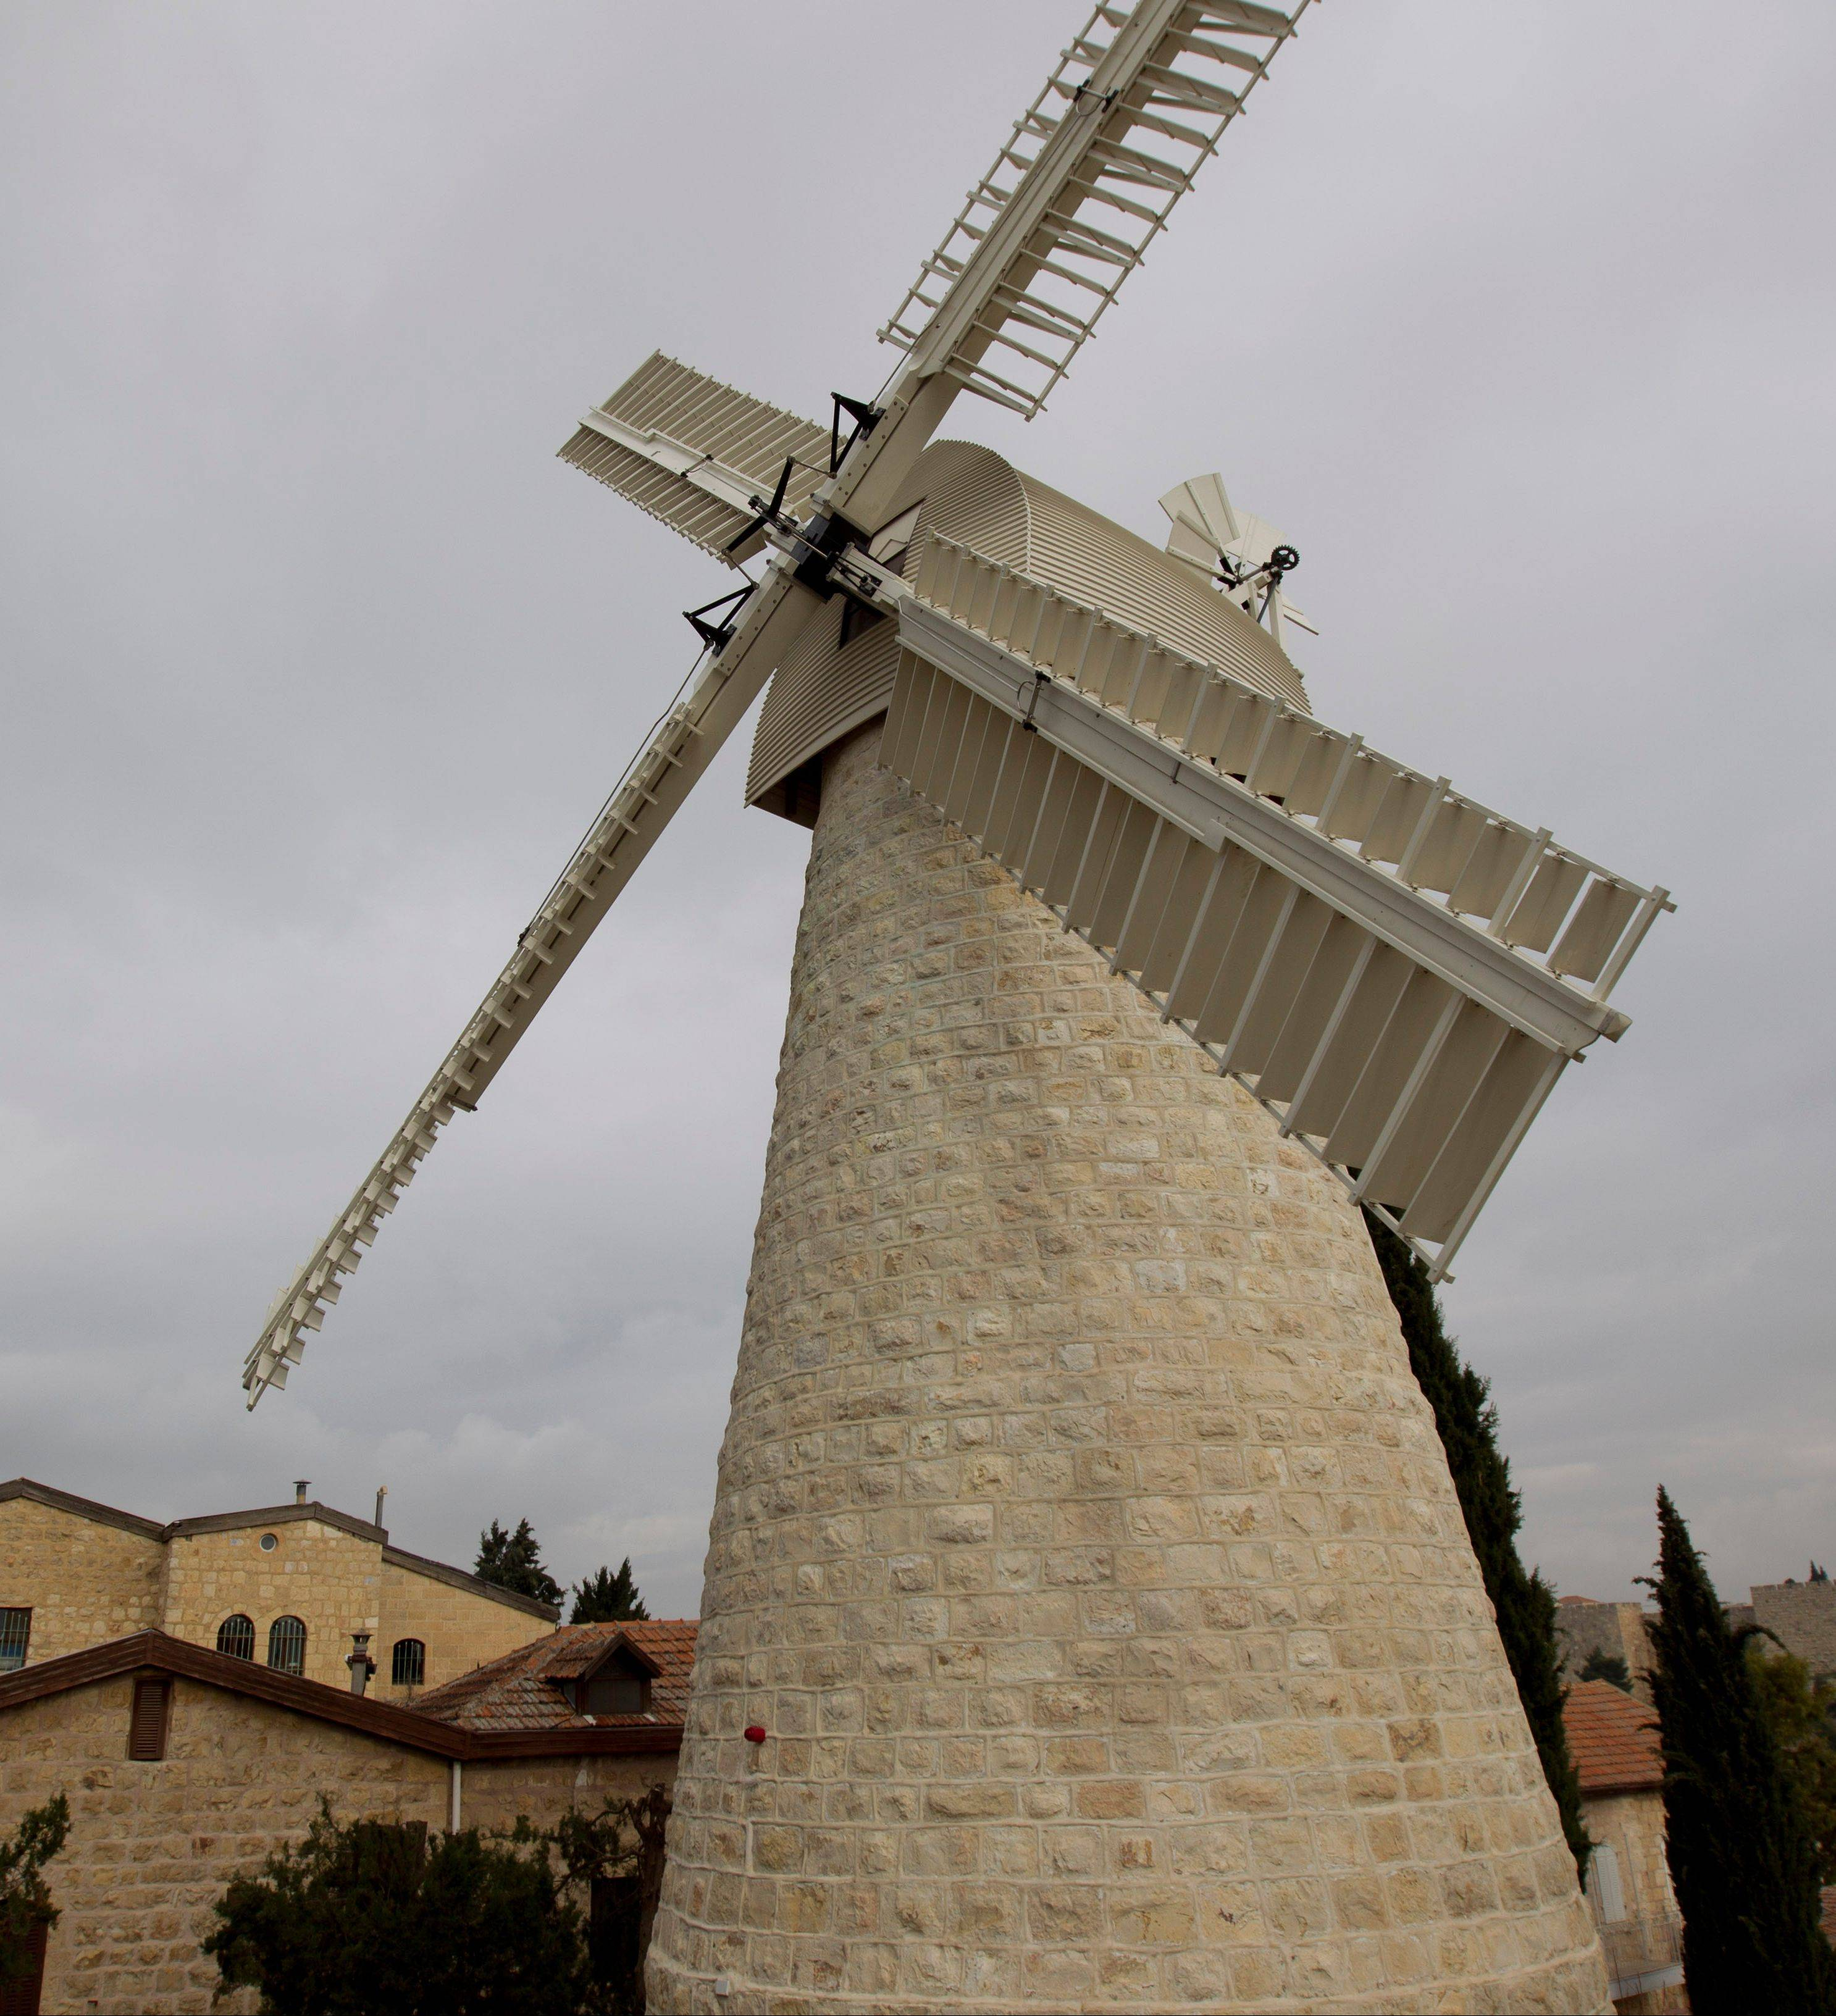 The Montefiore Windmill in the Mishkenot Shaananim neighborhood in Jerusalem was constructed in 1860 by Sir Moshe Montefiore, a wealthy British Jew. Mishkenot Shaíananim was the first Jewish neighborhood built outside the Old City walls.